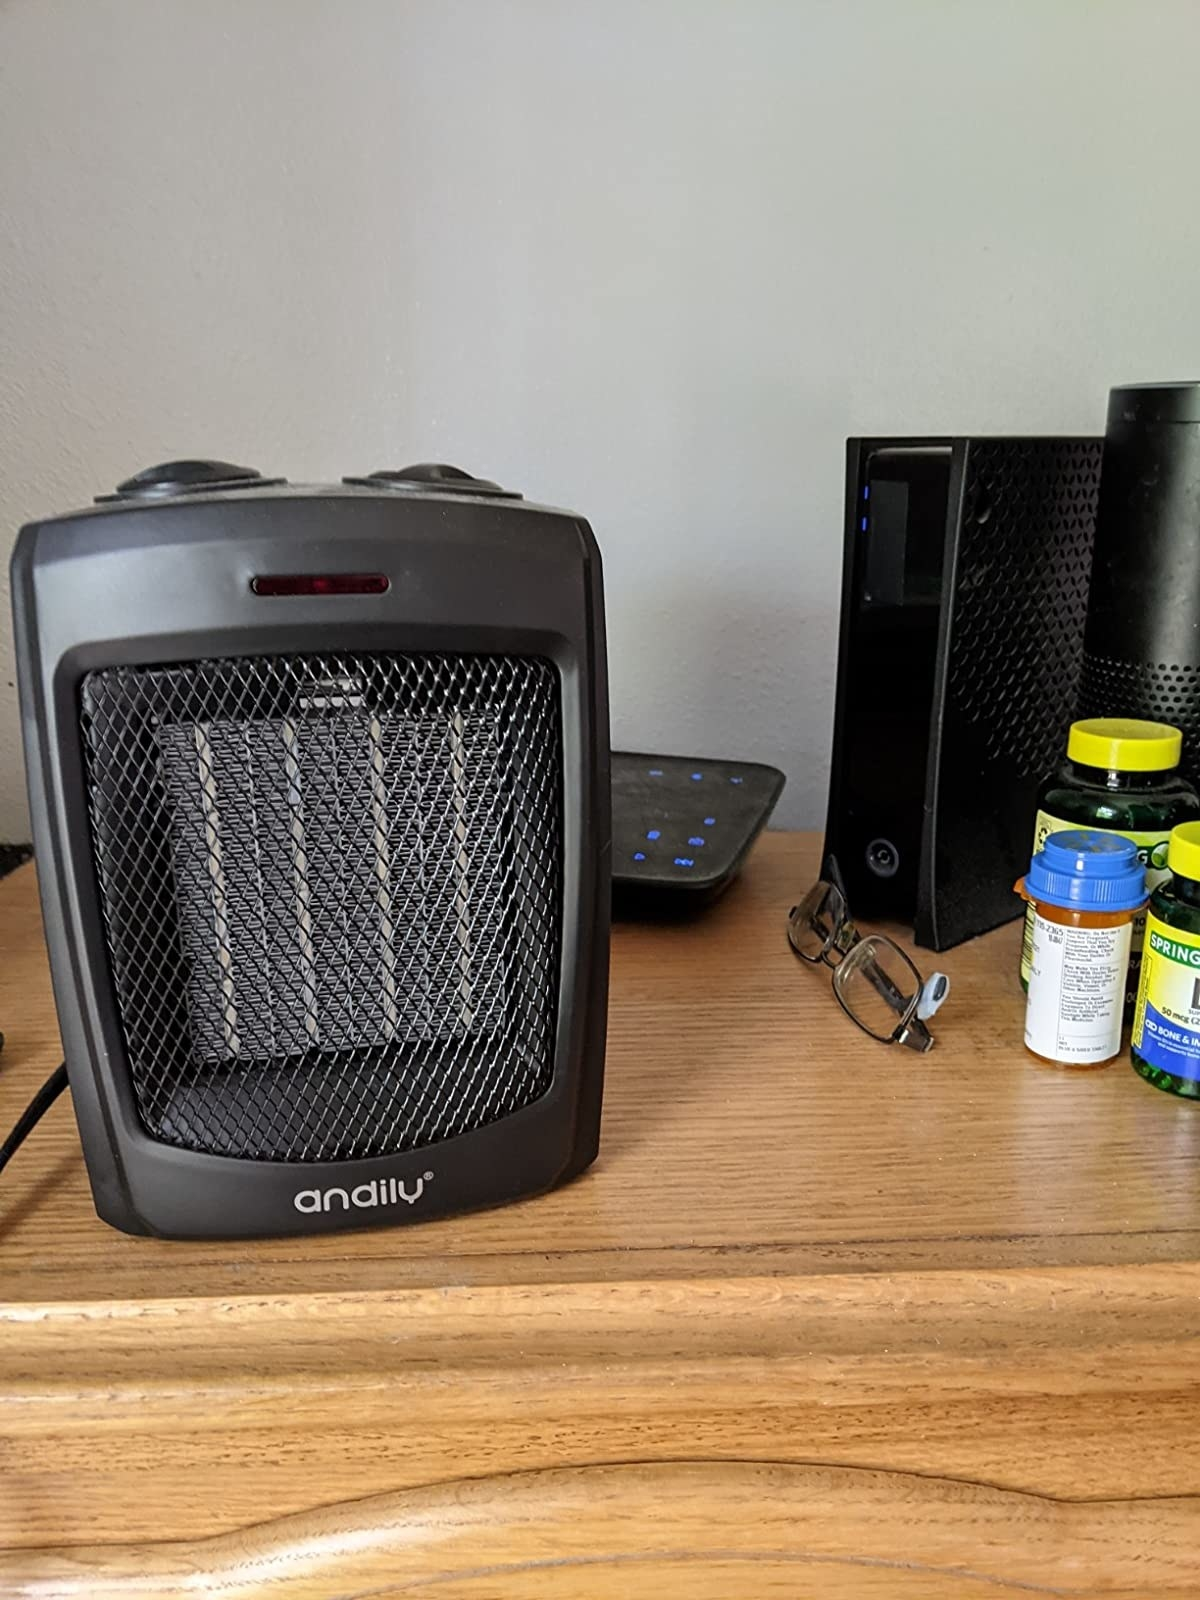 reviewer image of the portable space heater on a dresser